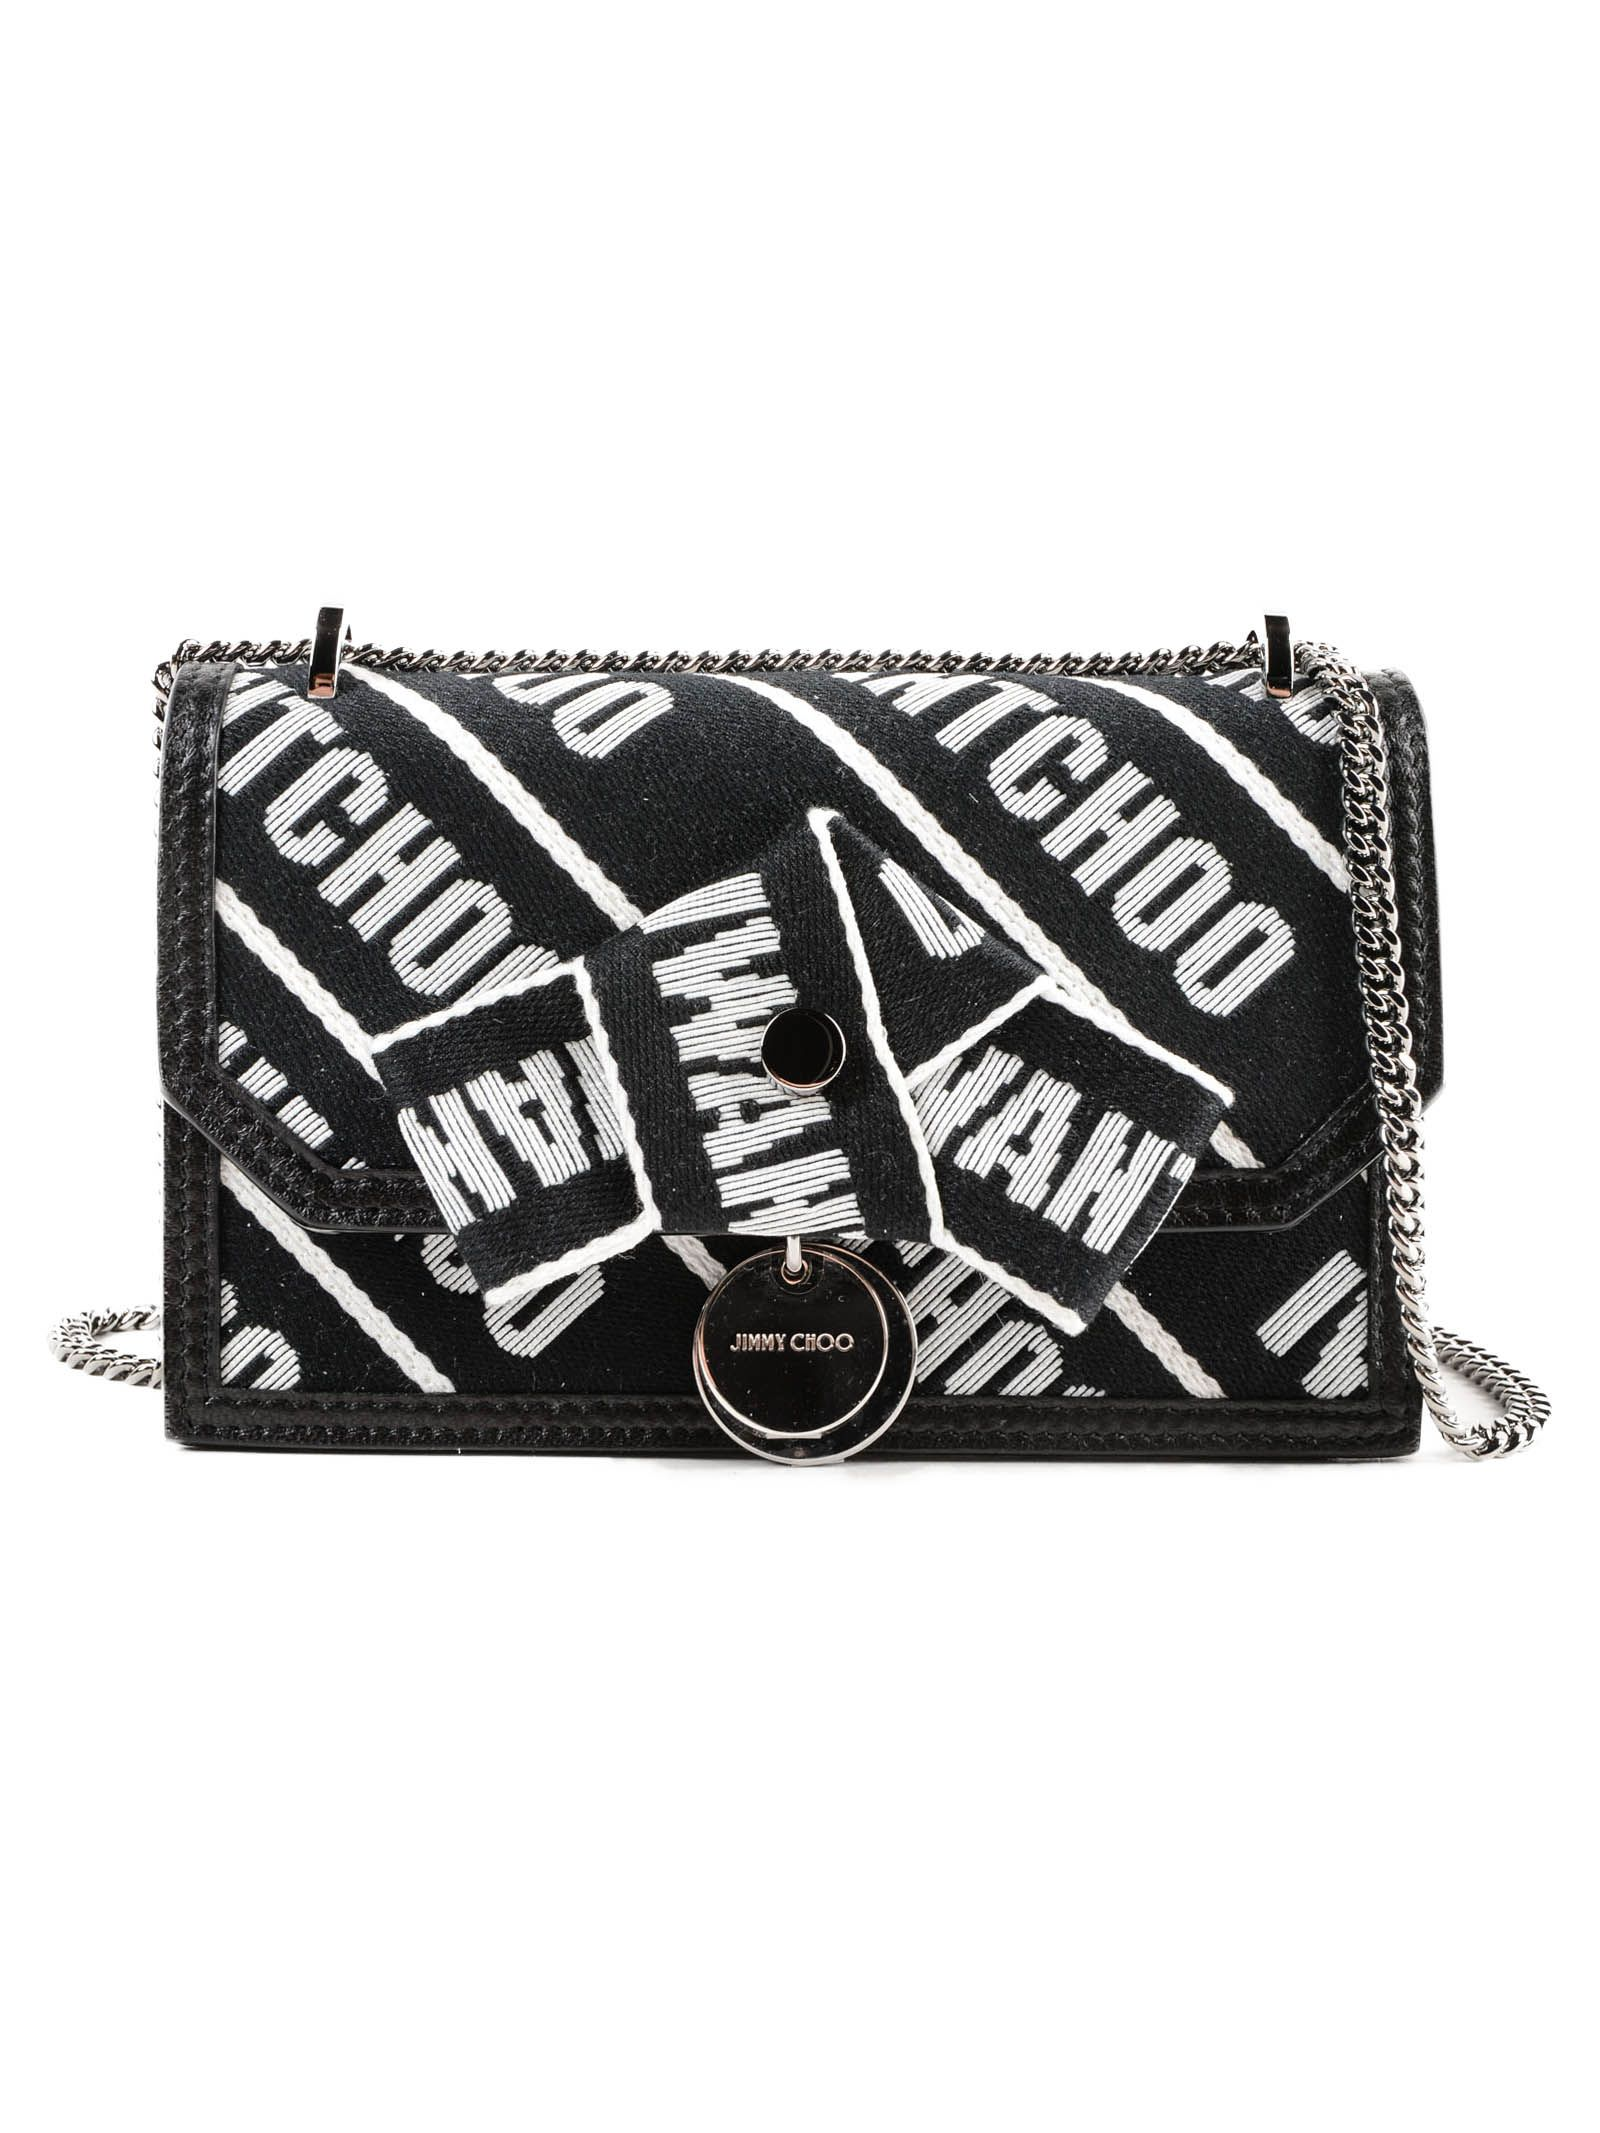 Jimmy Choo Finley Shoulder Bag